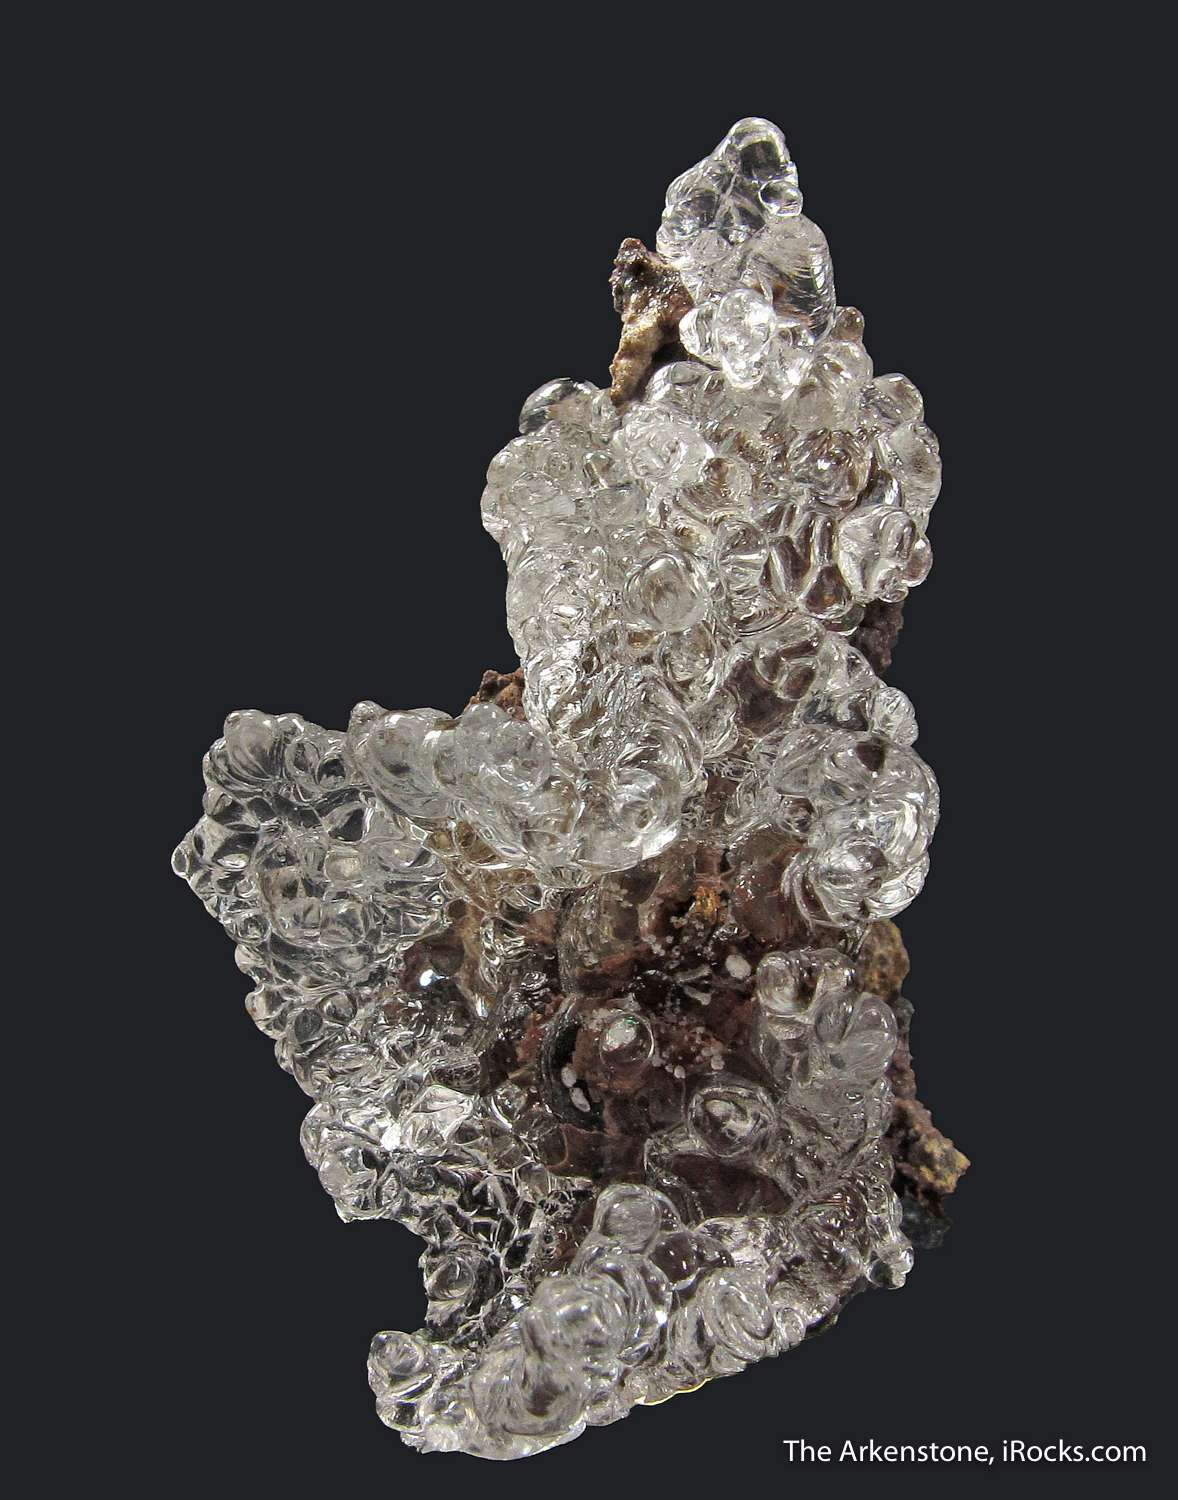 The andesite quarries Tarcal produced Hyalite Opal water clear